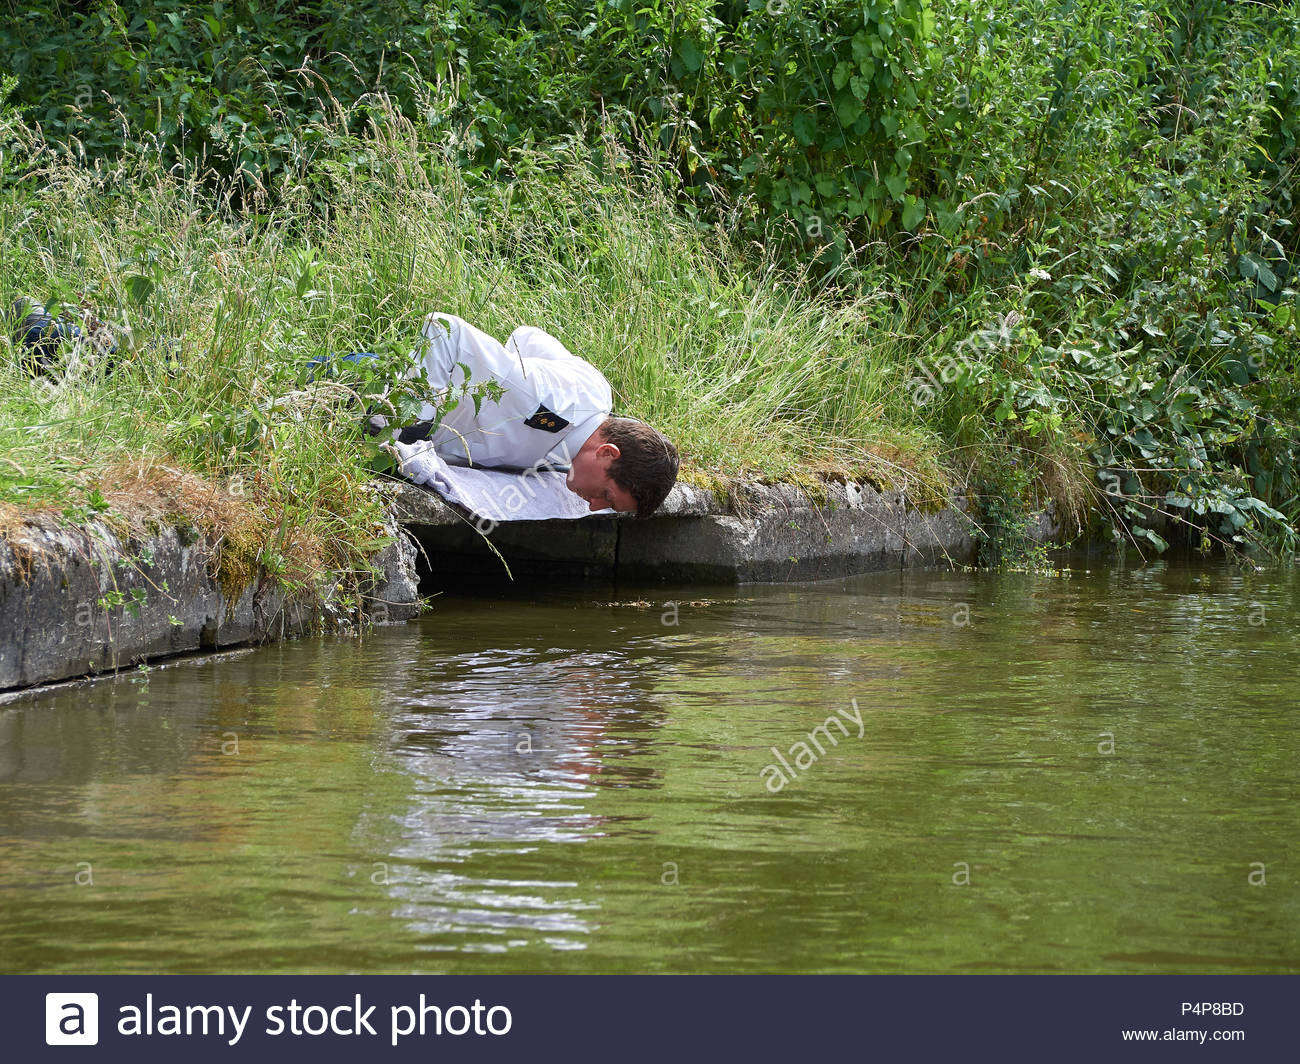 Officer Jamie checkign on the animal before attempting the rescue - Stock Image